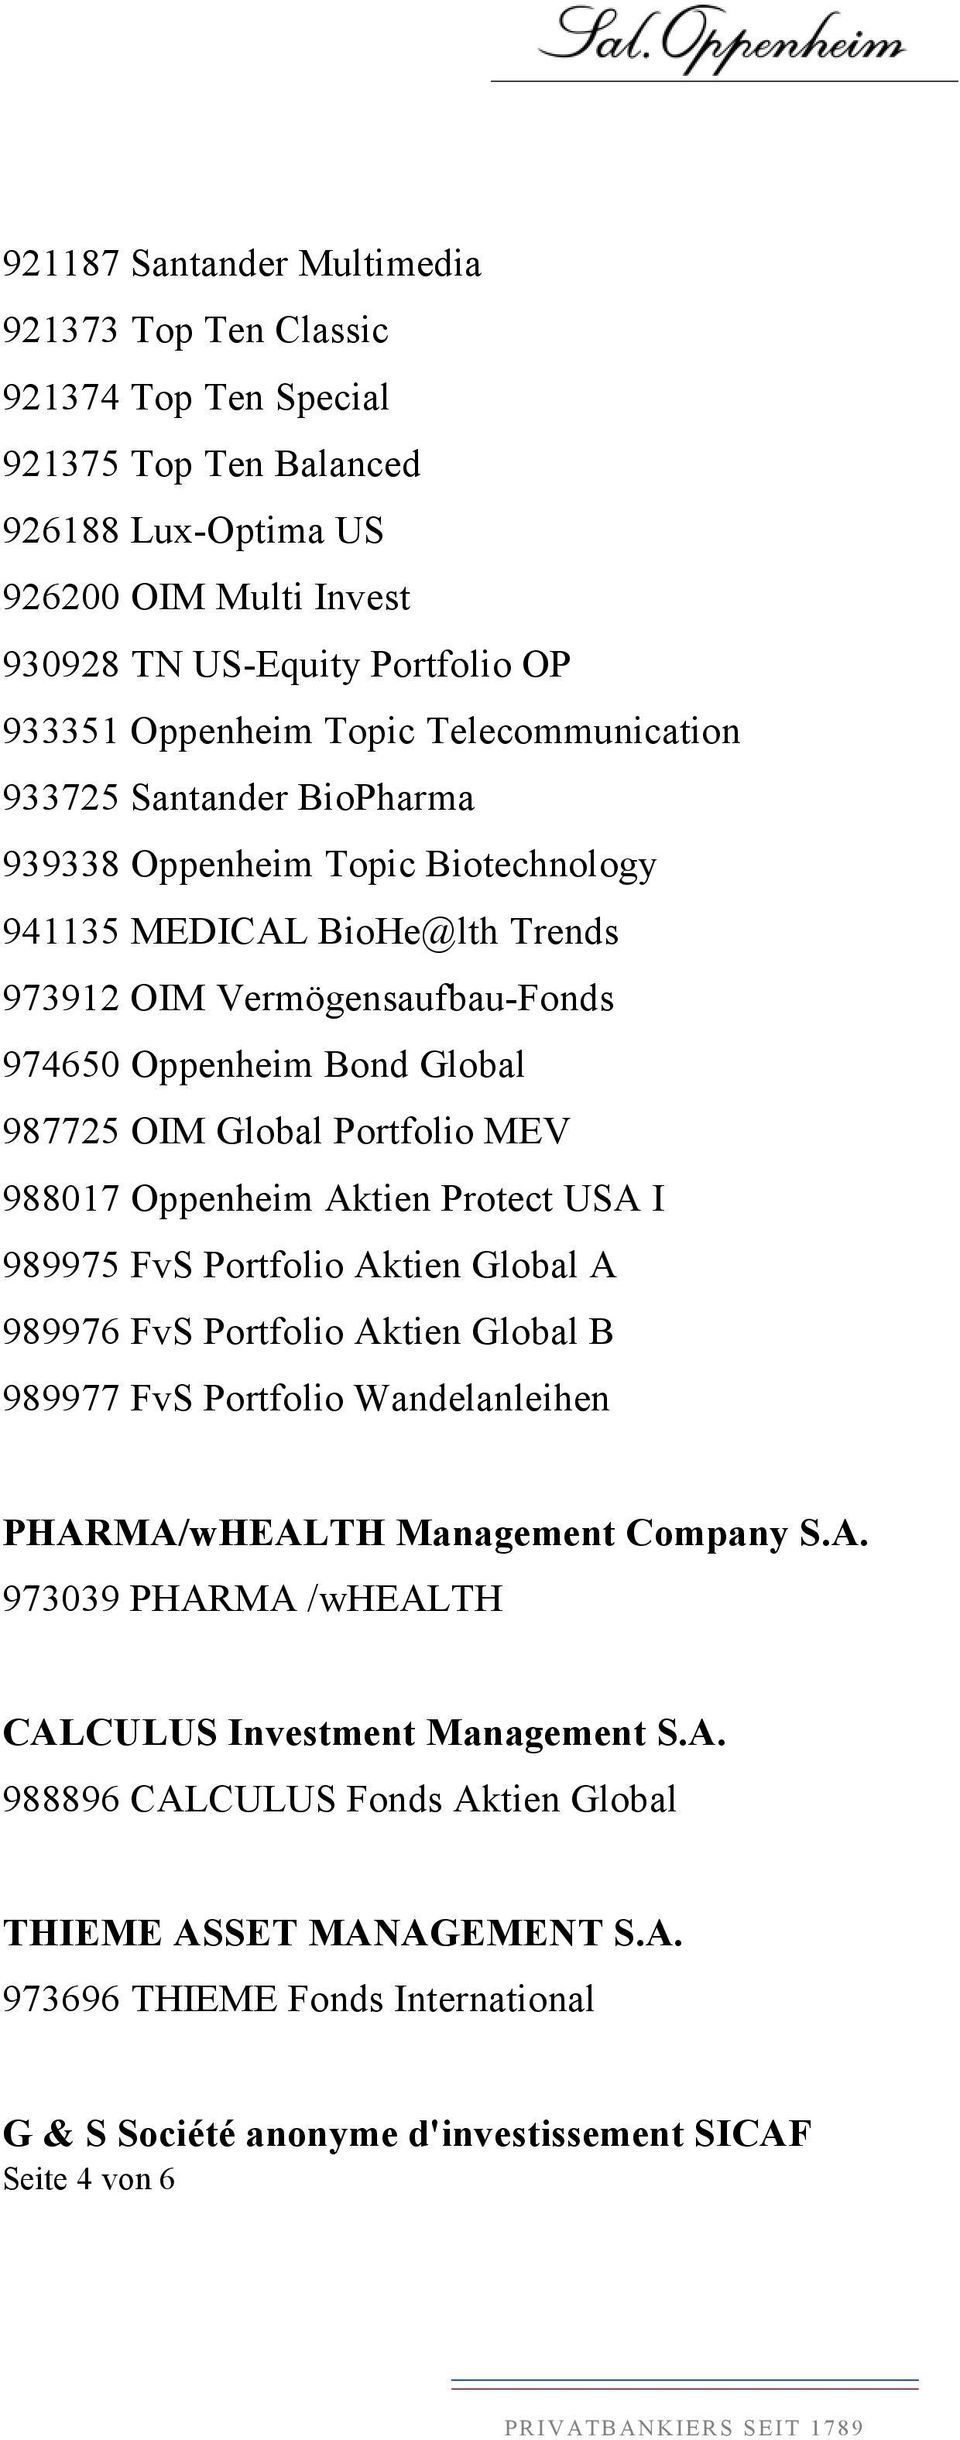 Portfolio MEV 988017 Oppenheim Aktien Protect USA I 989975 FvS Portfolio Aktien Global A 989976 FvS Portfolio Aktien Global B 989977 FvS Portfolio Wandelanleihen PHARMA/wHEALTH Management Company S.A. 973039 PHARMA /whealth CALCULUS Investment Management S.